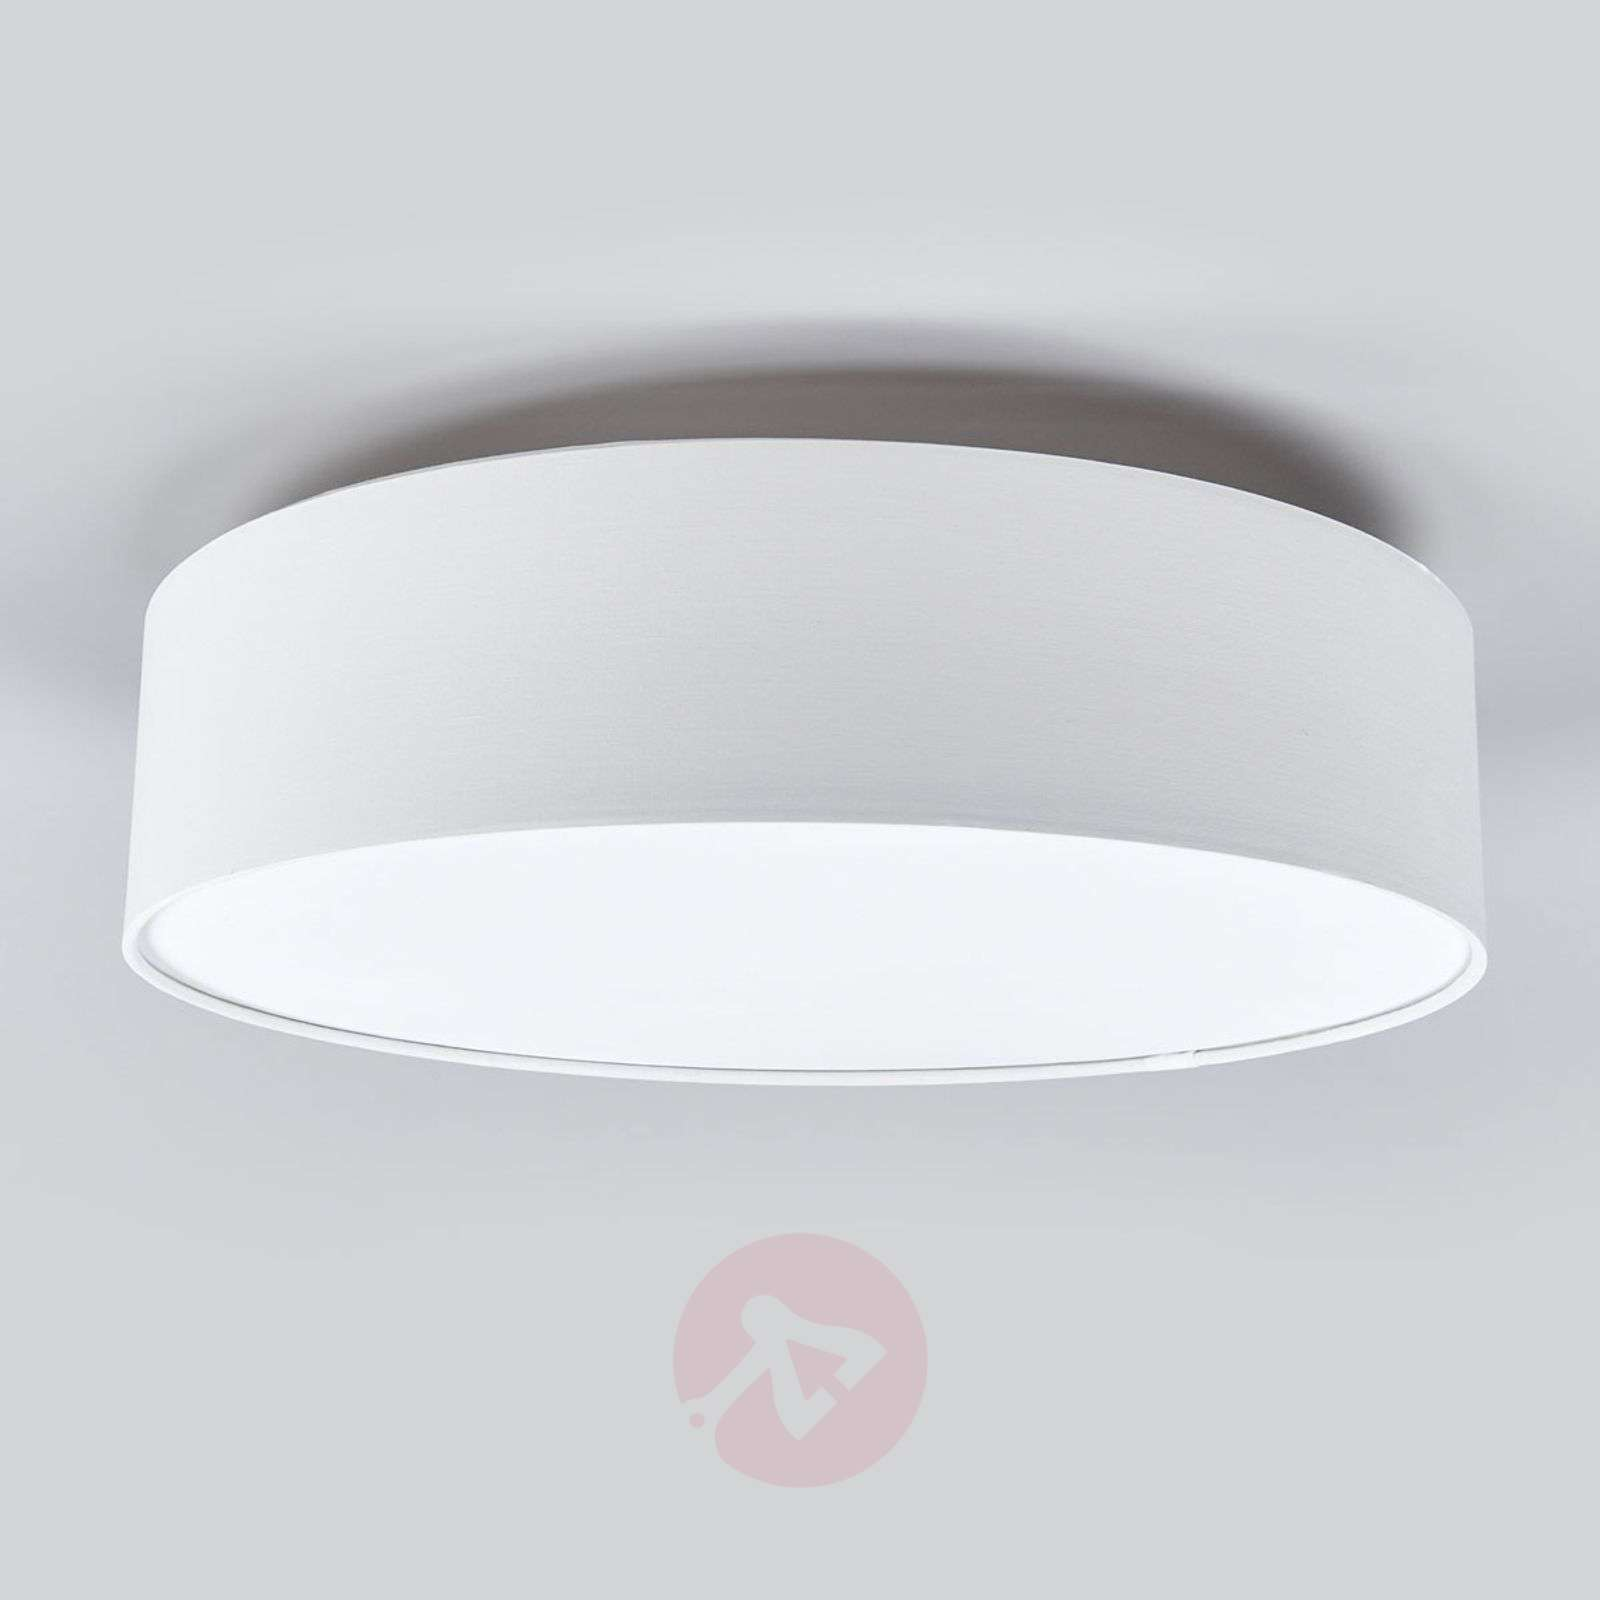 Fabric-covered ceiling light Risa-9004557-04